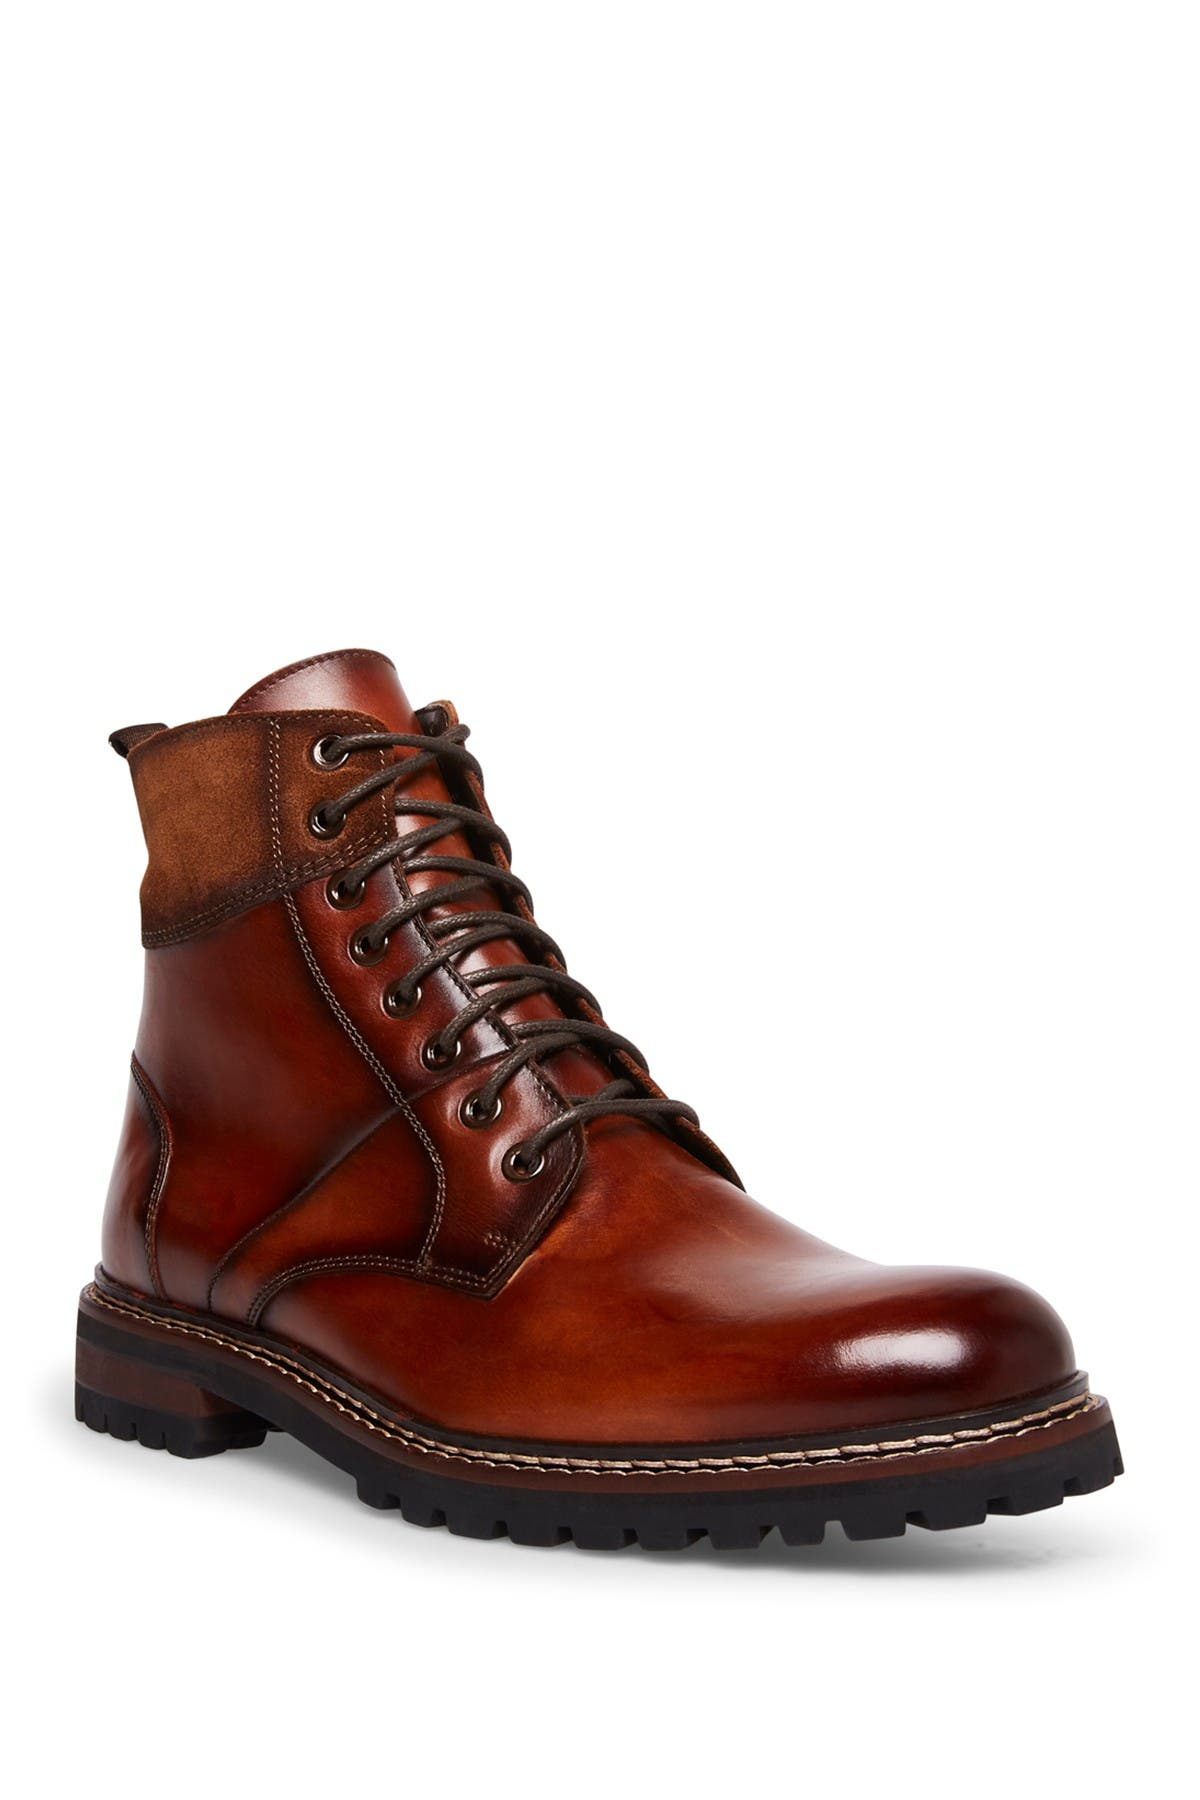 Image of Steve Madden Stratus Leather Lace-Up Lug Sole Boot